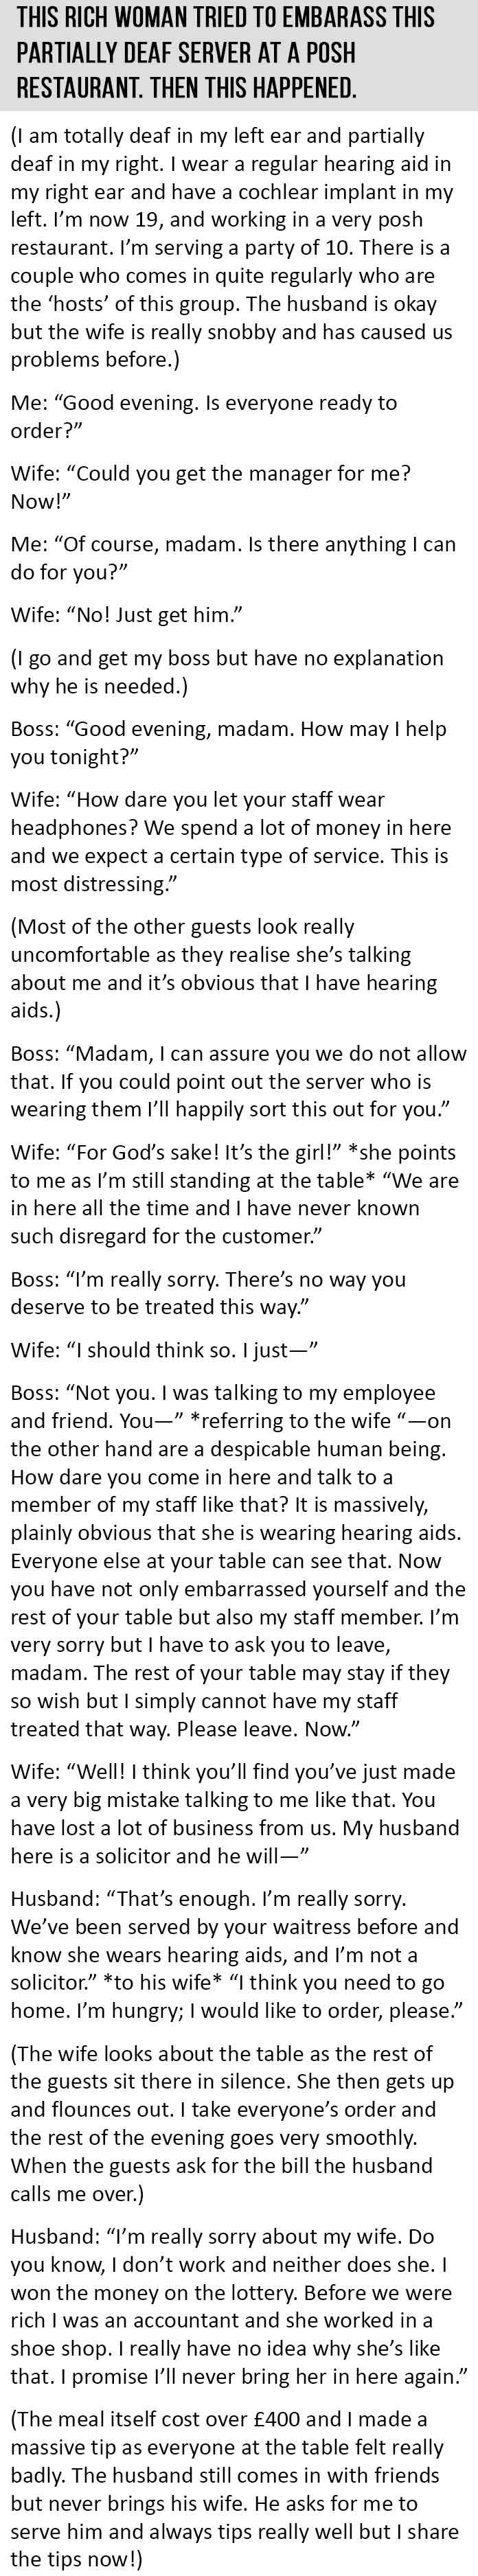 Rich Woman Tries To Embarrass This Partially Deaf Server. Then This Happened.